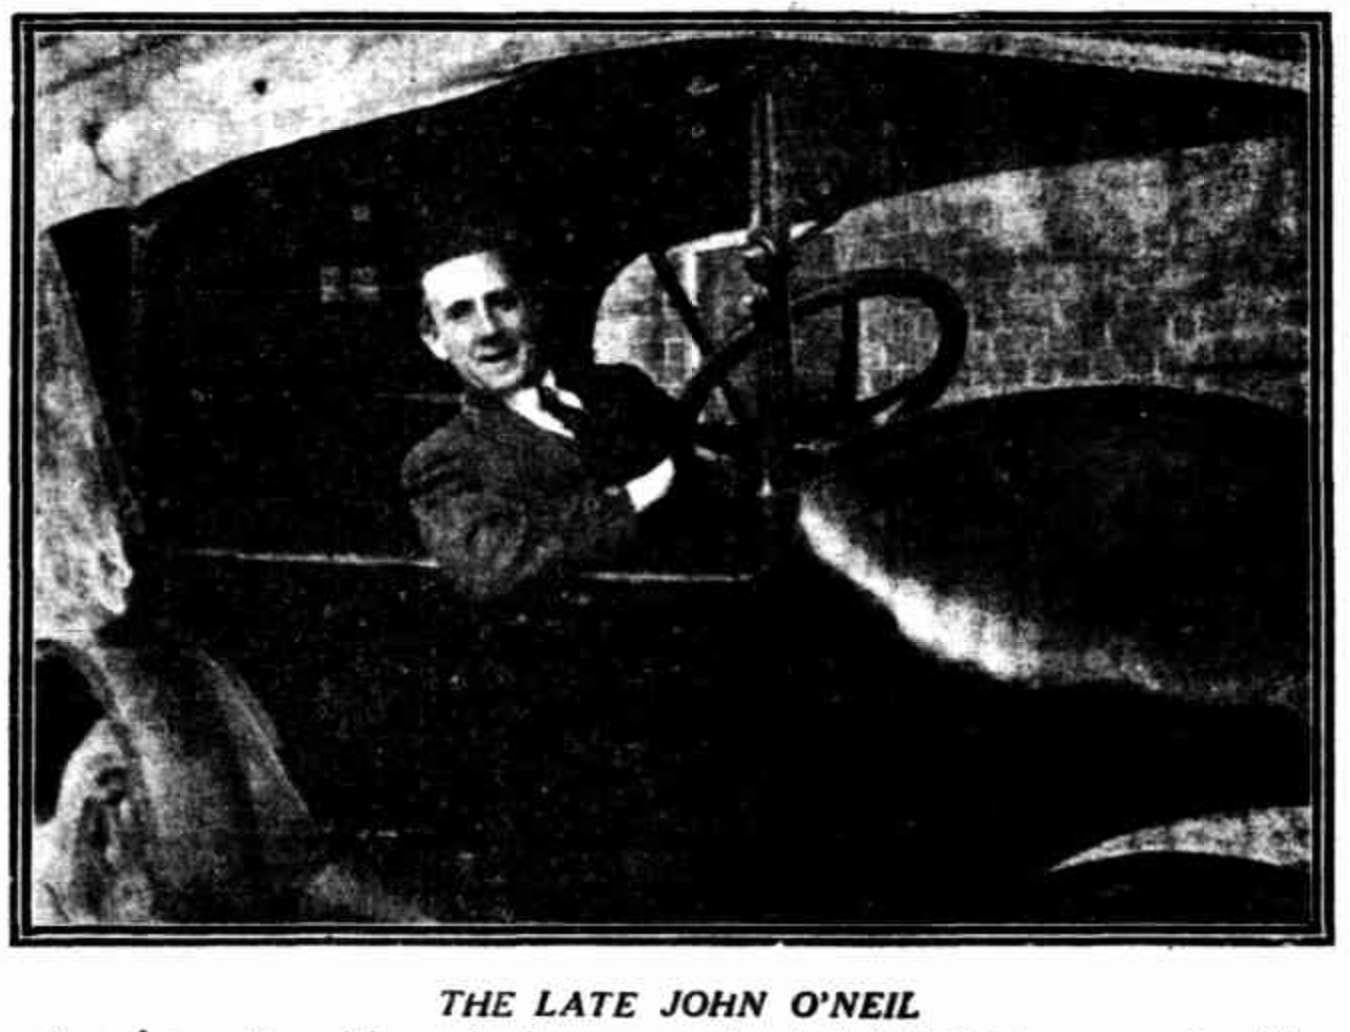 The murdered man at the wheel of his Buick motor car in which he later lost his life, The Sunday Times, 15 June 1924.